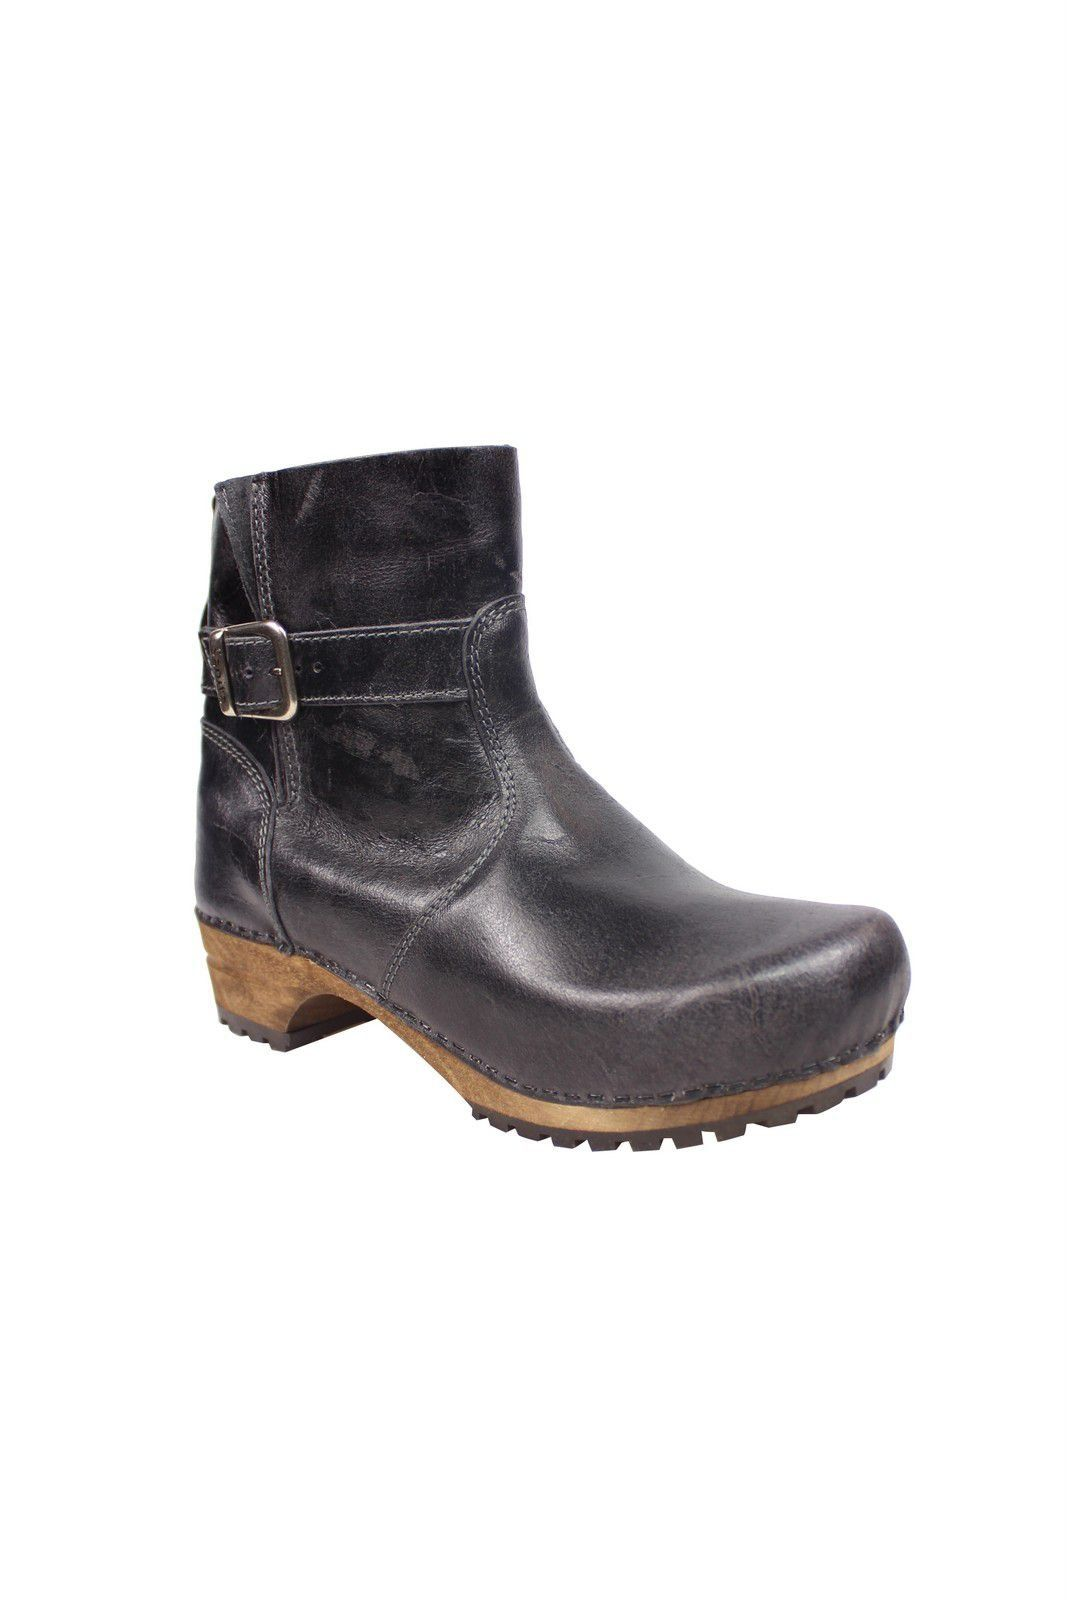 Sanita Mina Low Classic Clog Boot Black 452330 Main